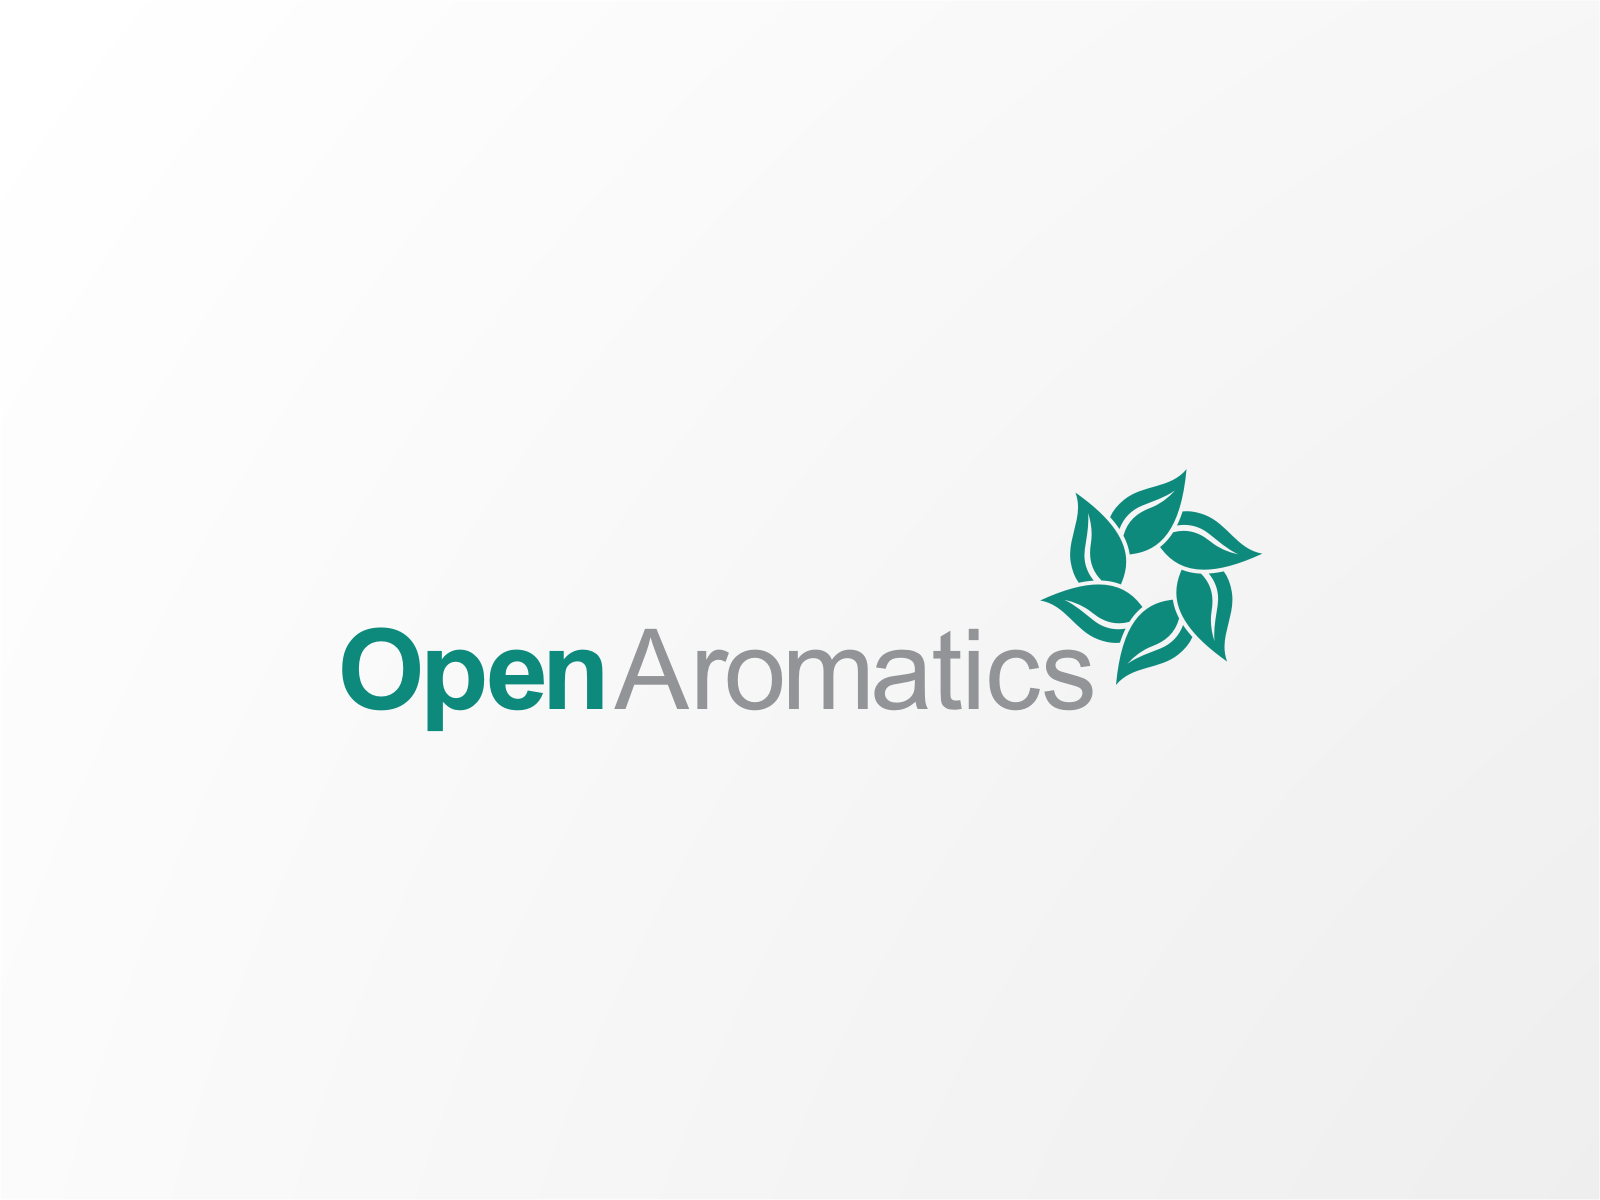 Help Open Aromatics with a new logo